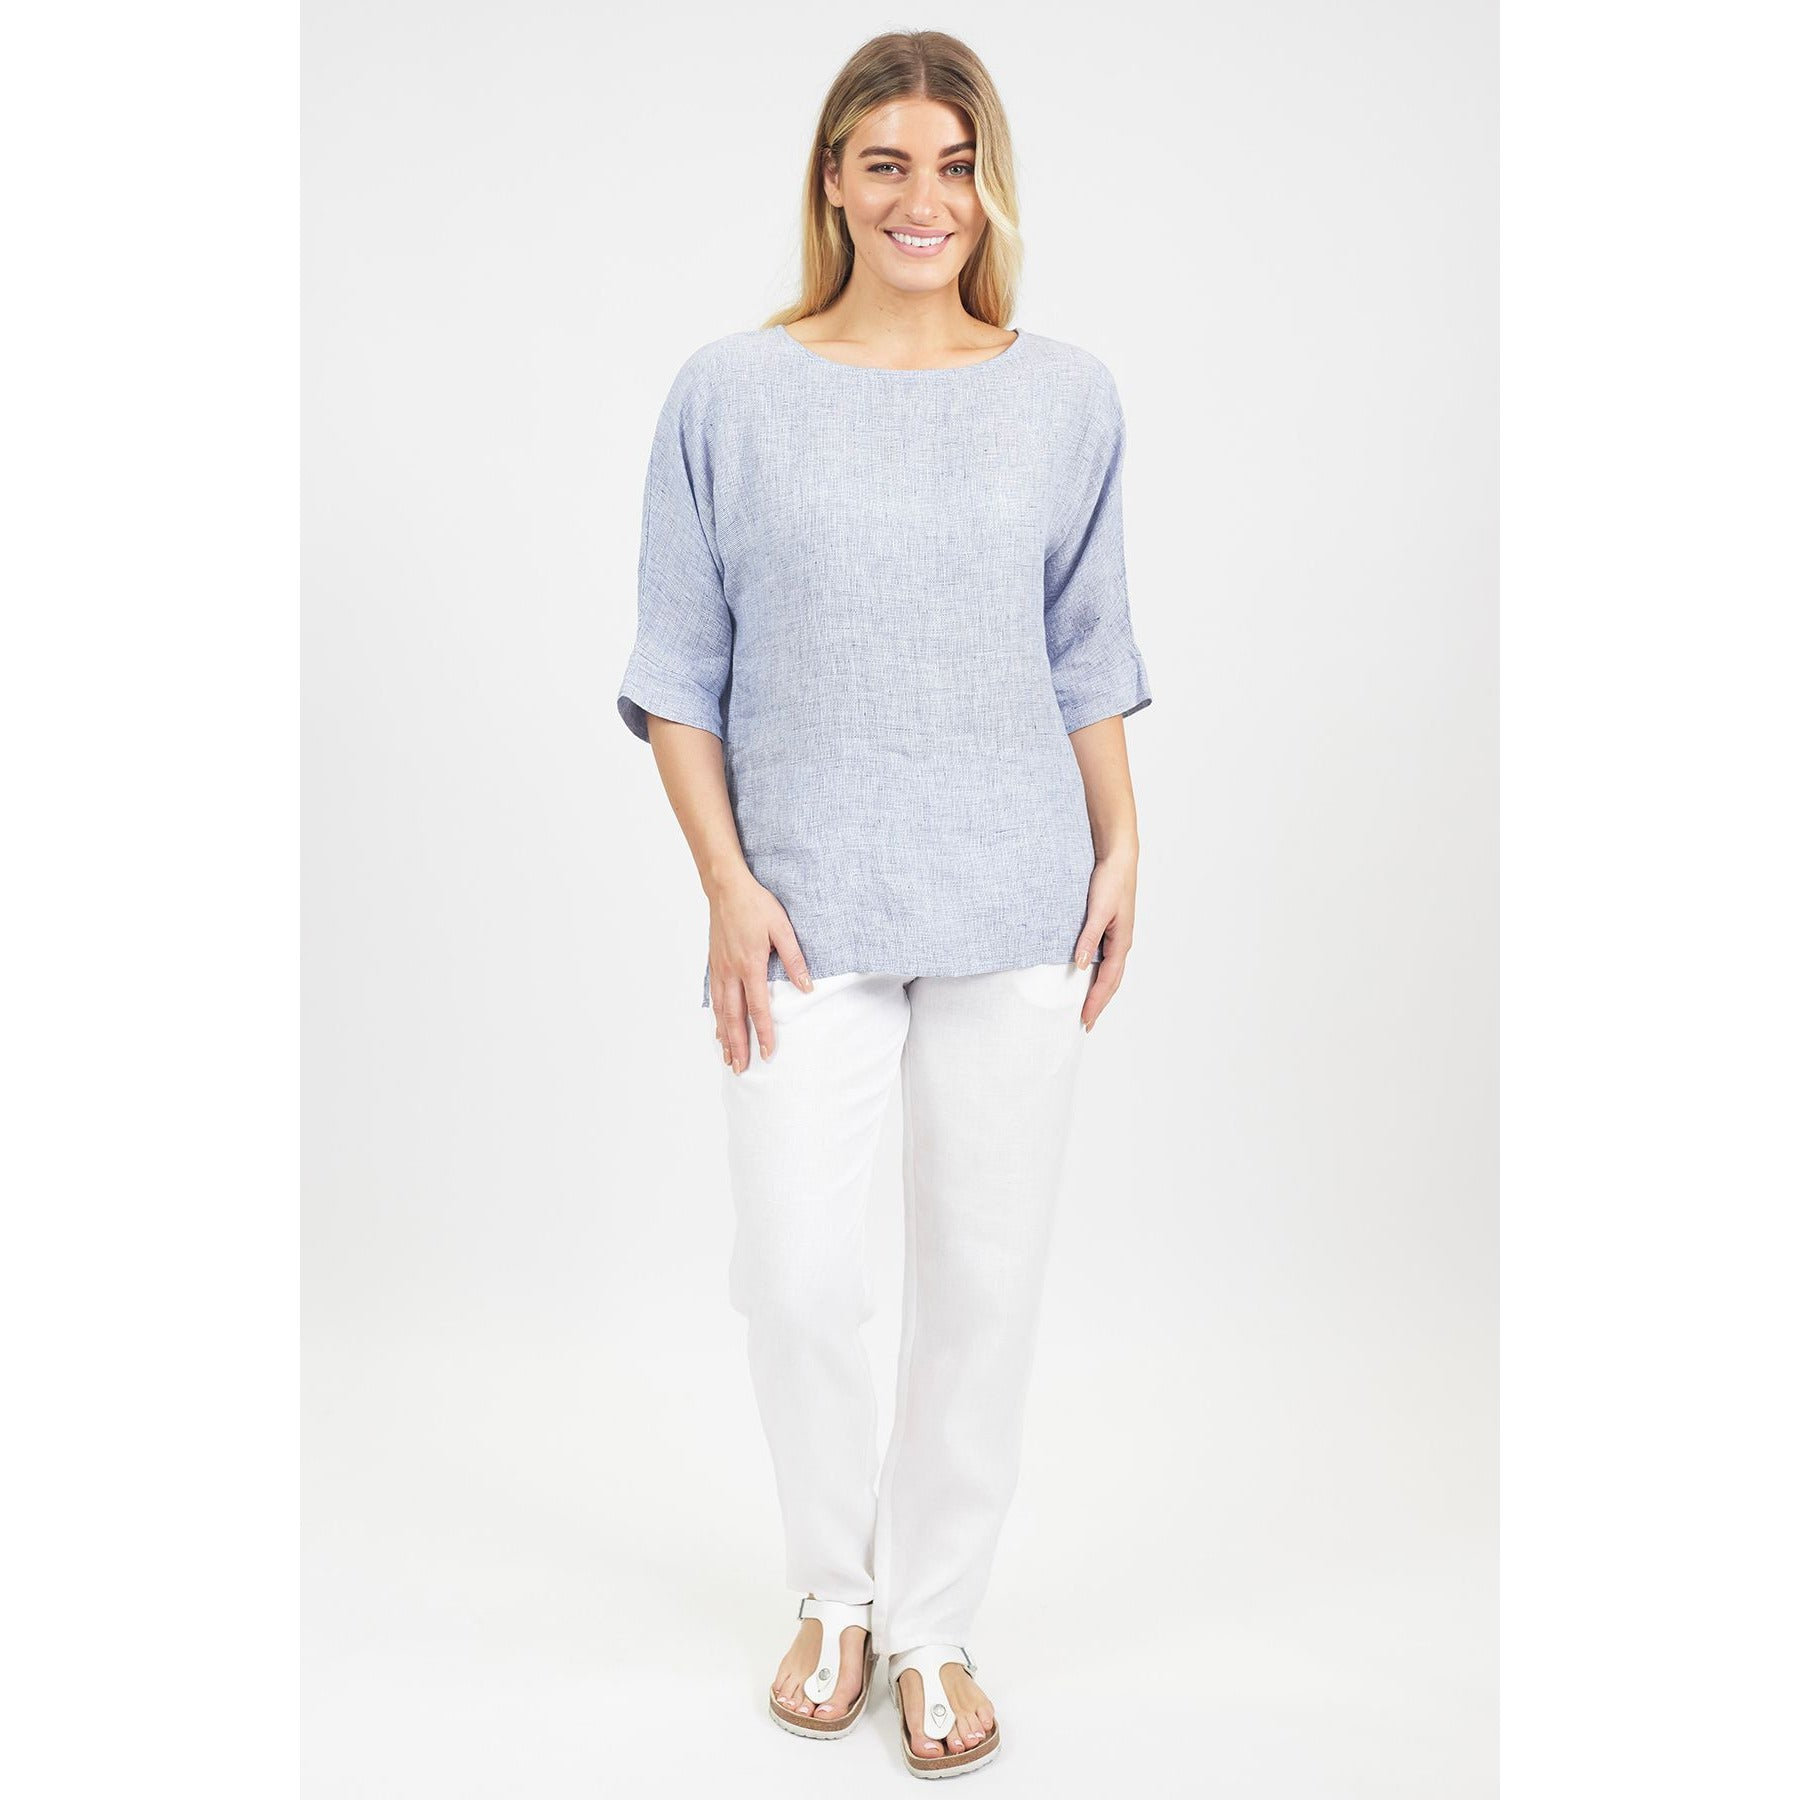 Naturals by O & J Houndstooth Drop Sleeve Top